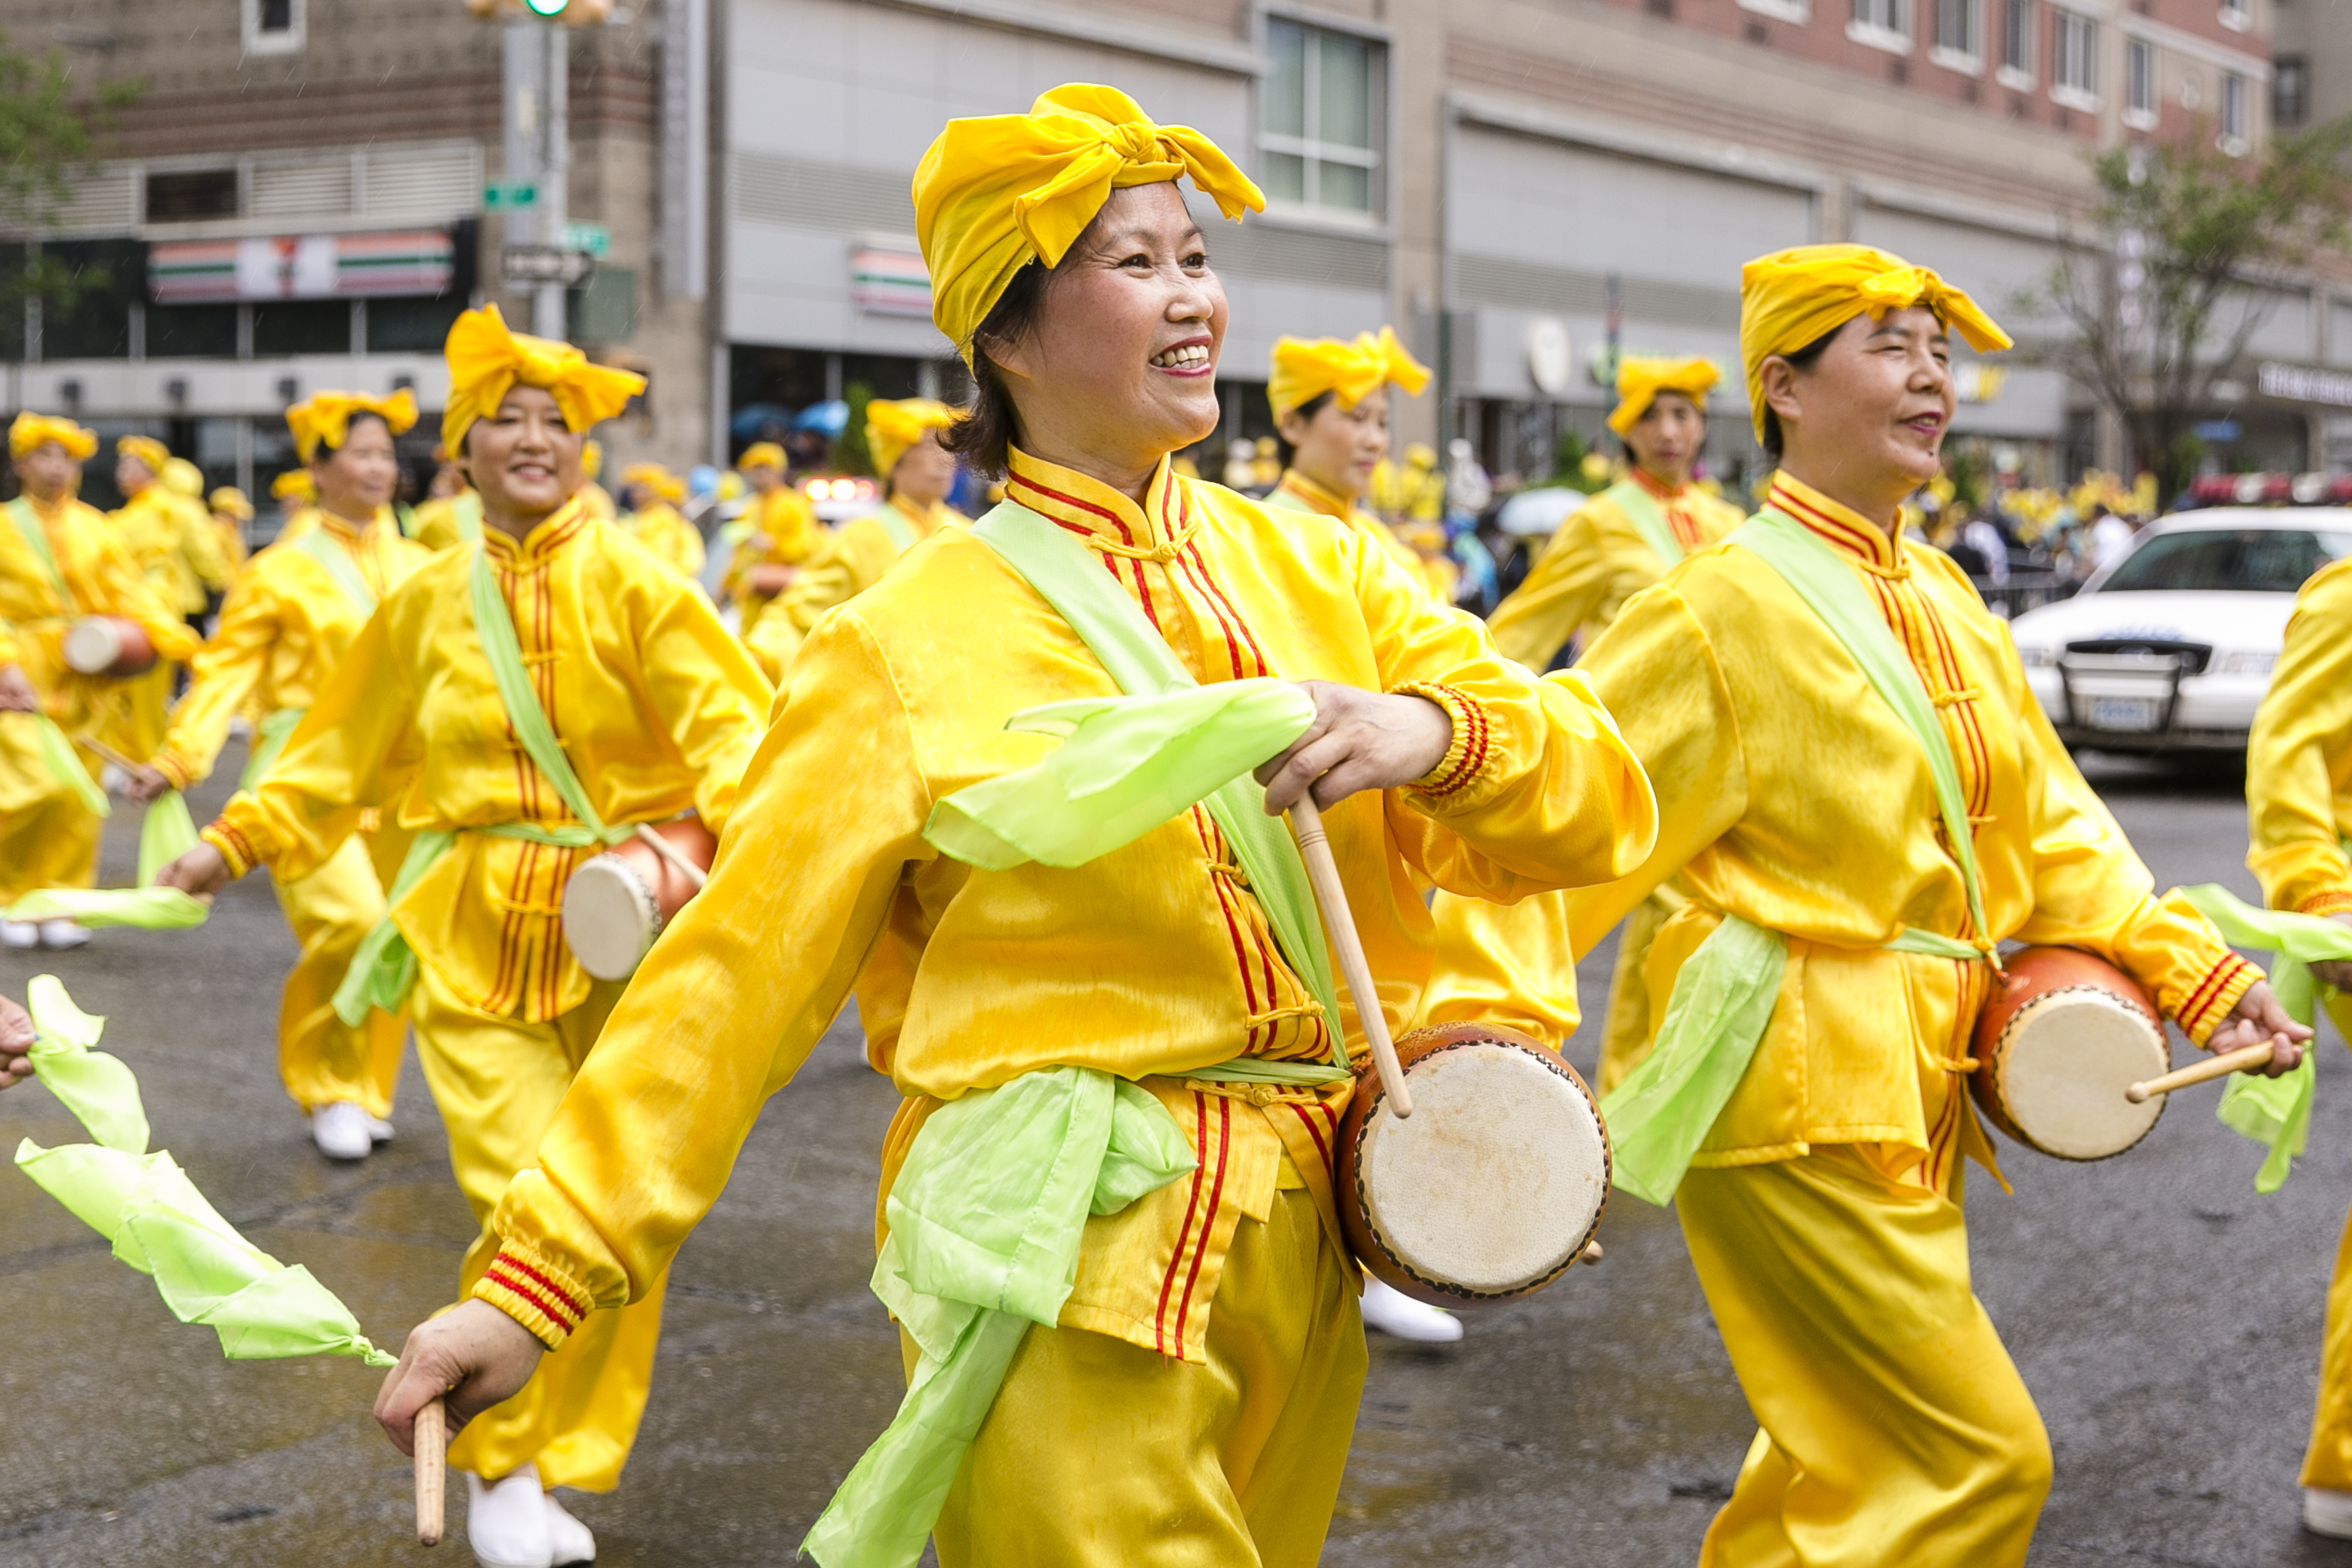 A Falun Gong waist drum troupe performs in the World Falun Dafa Day parade along 42nd Street in New York, on May 13, 2016. (Samira Bouaou/Epoch Times)